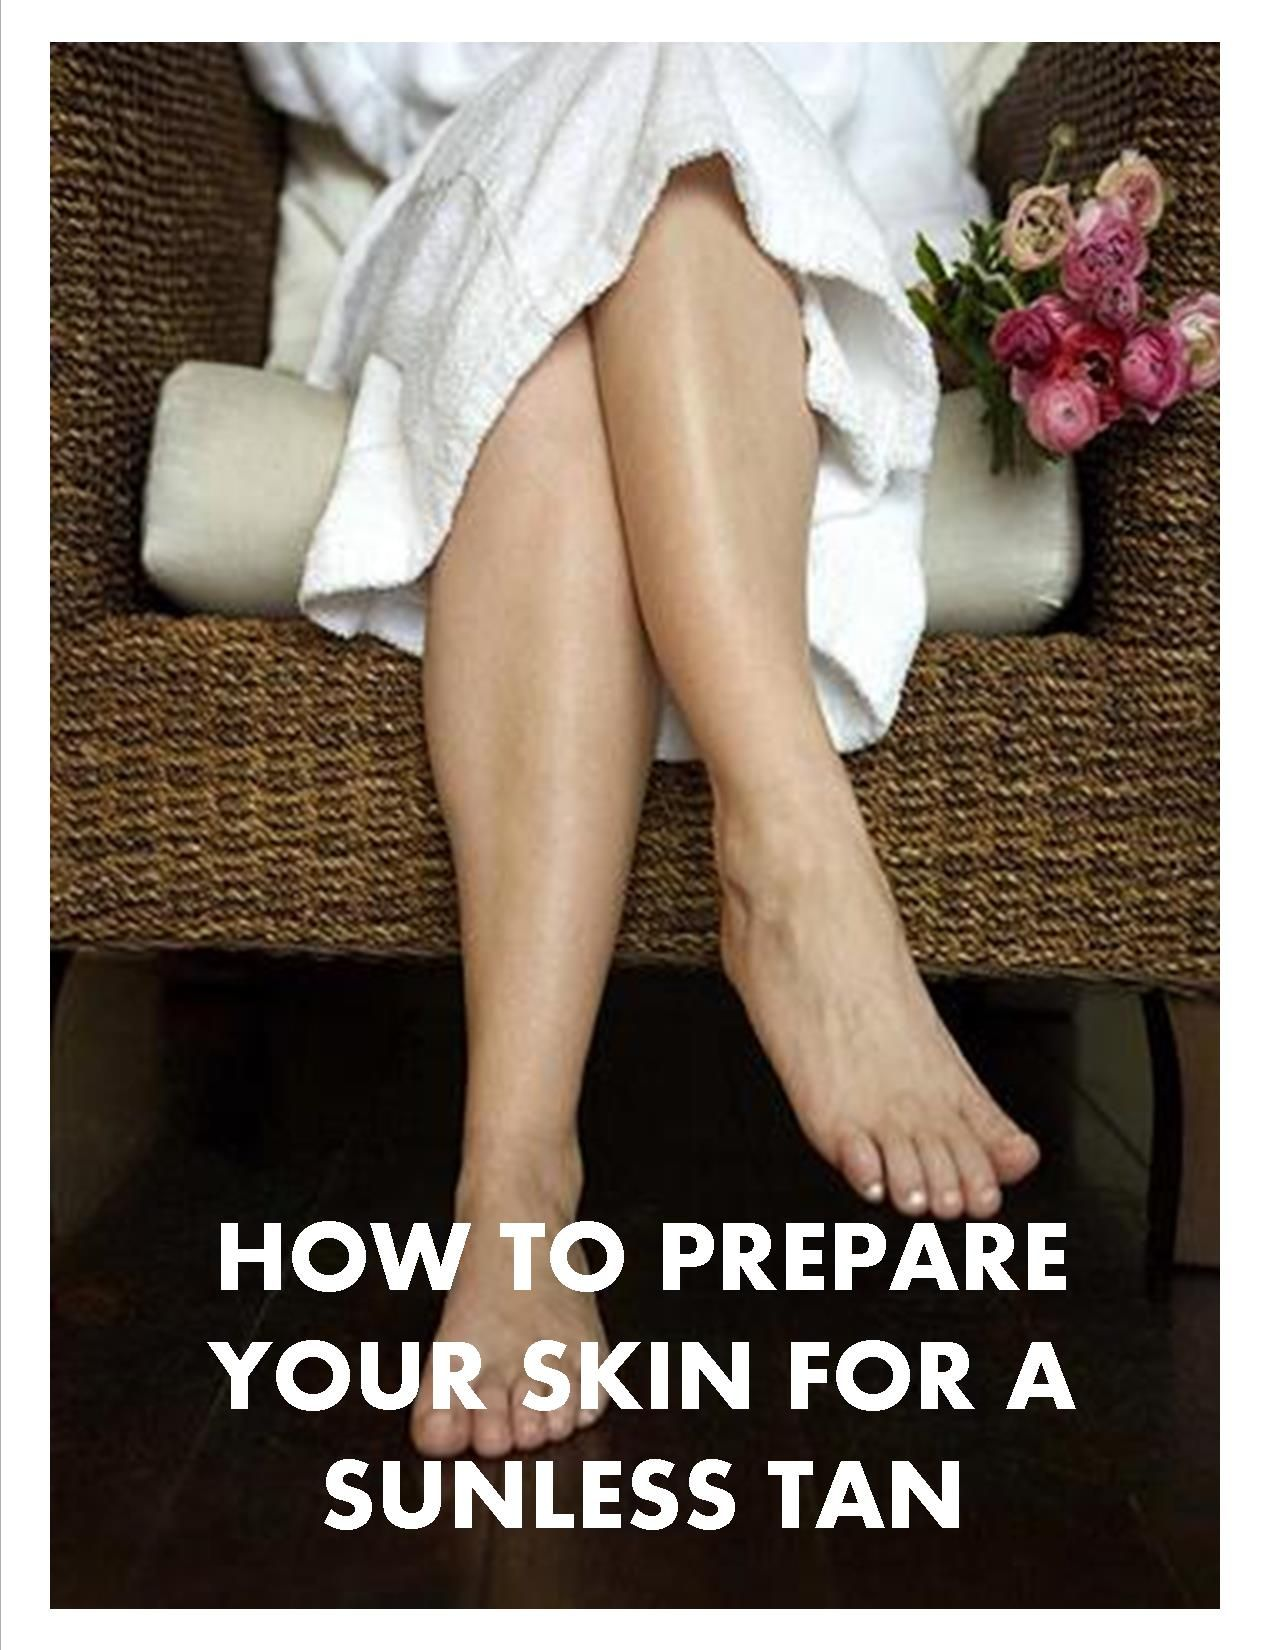 Skin Preparation for a Sunless Tan. Steps to prepare your